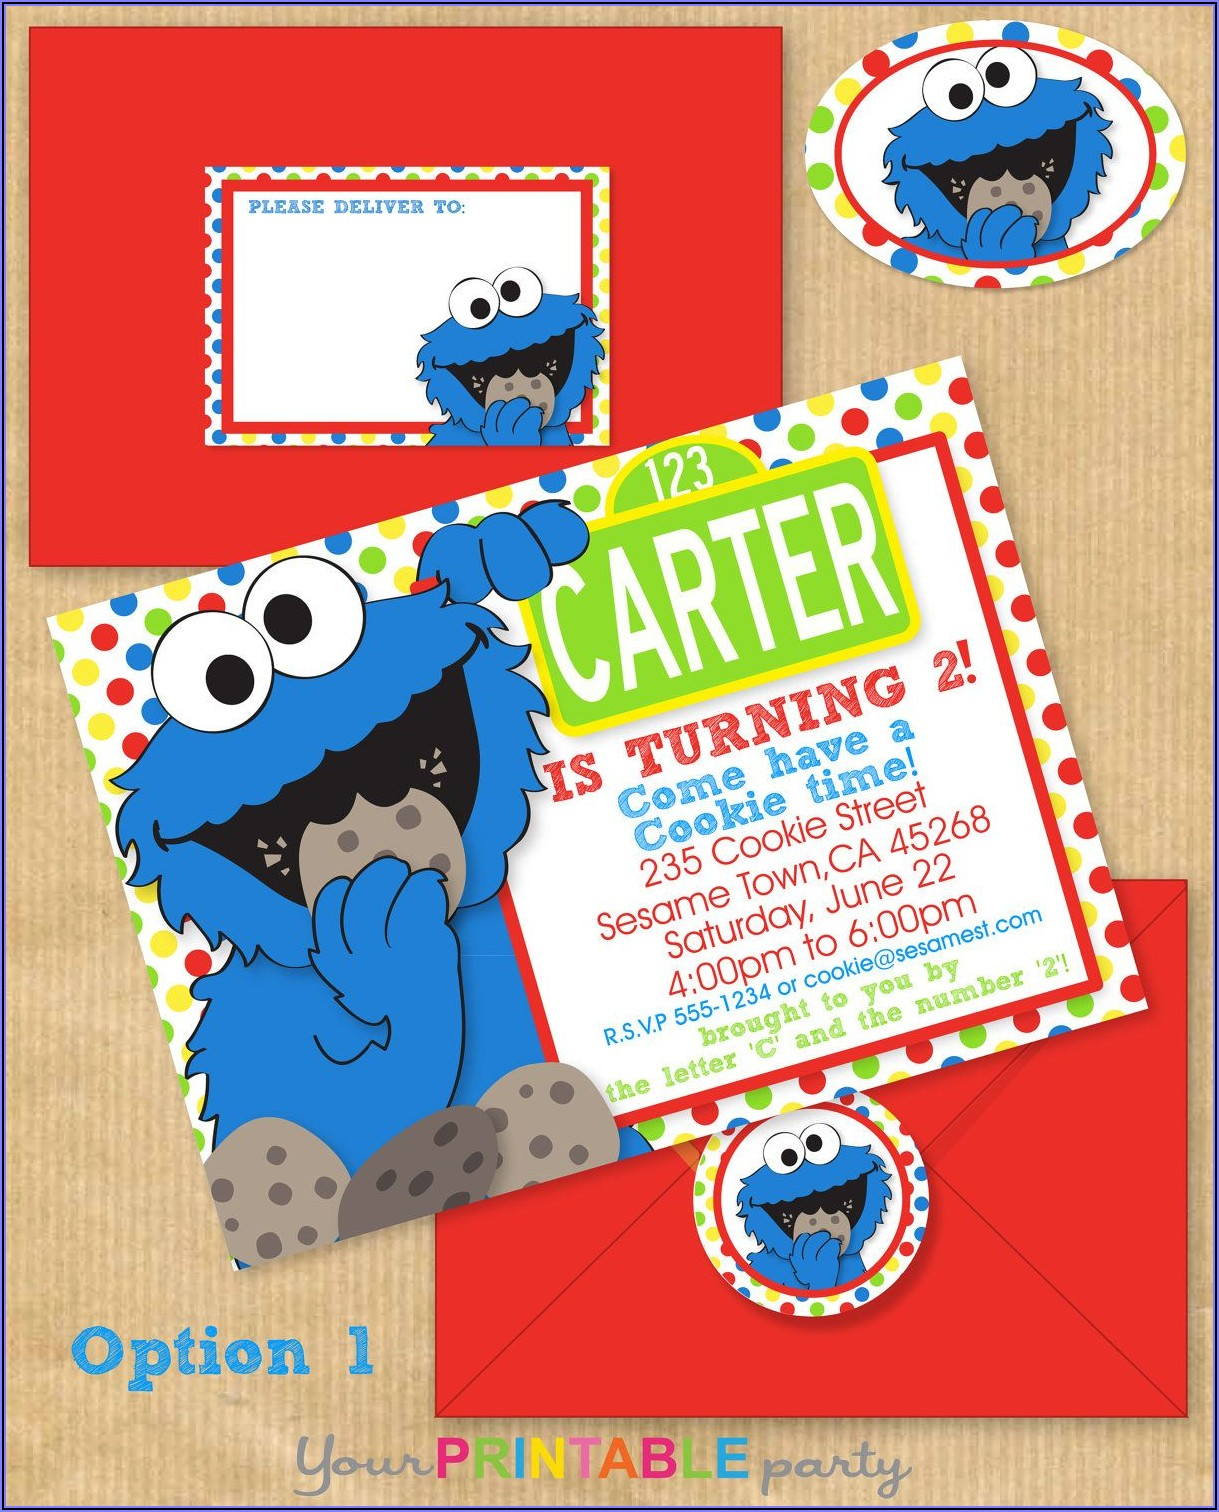 Cookie Monster Party Invitation Template